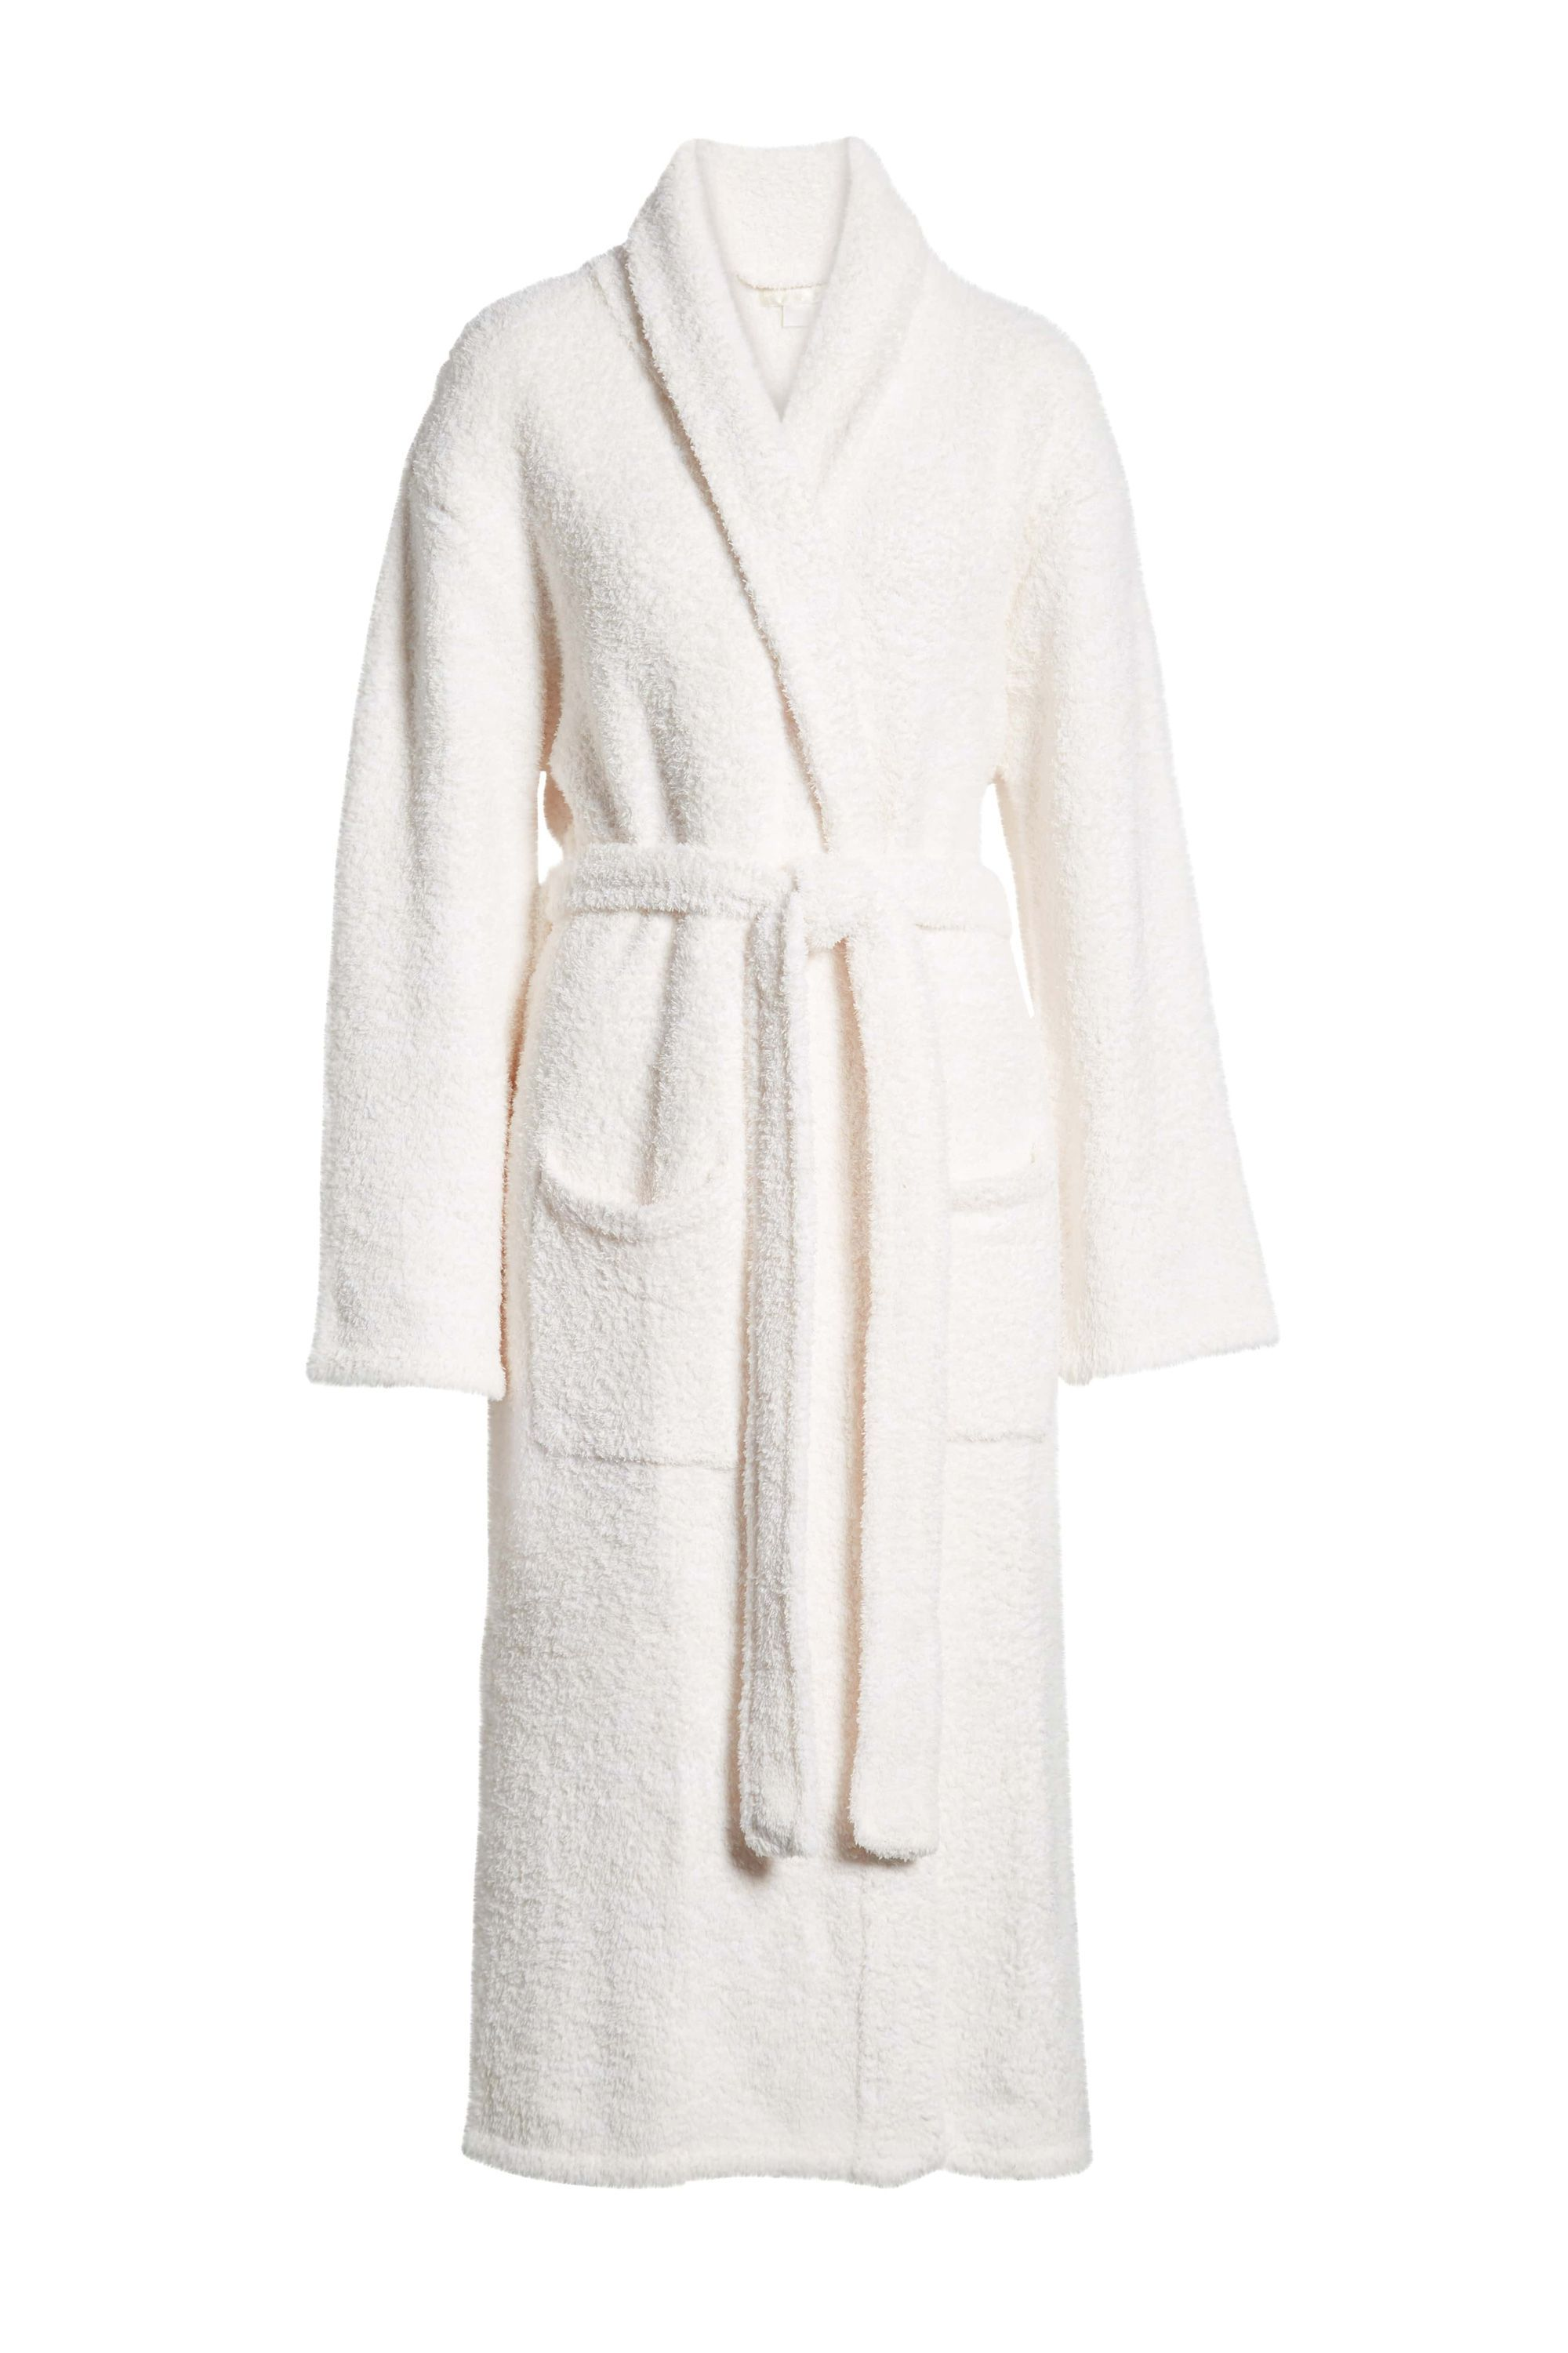 BAREFOOT DREAMS CozyChic® Robe BAREFOOT DREAMS nordstrom.com $99.00 SHOP NOW Ok, a robe isn't exactly unique, but it's a total fail-safe gift for anyone.